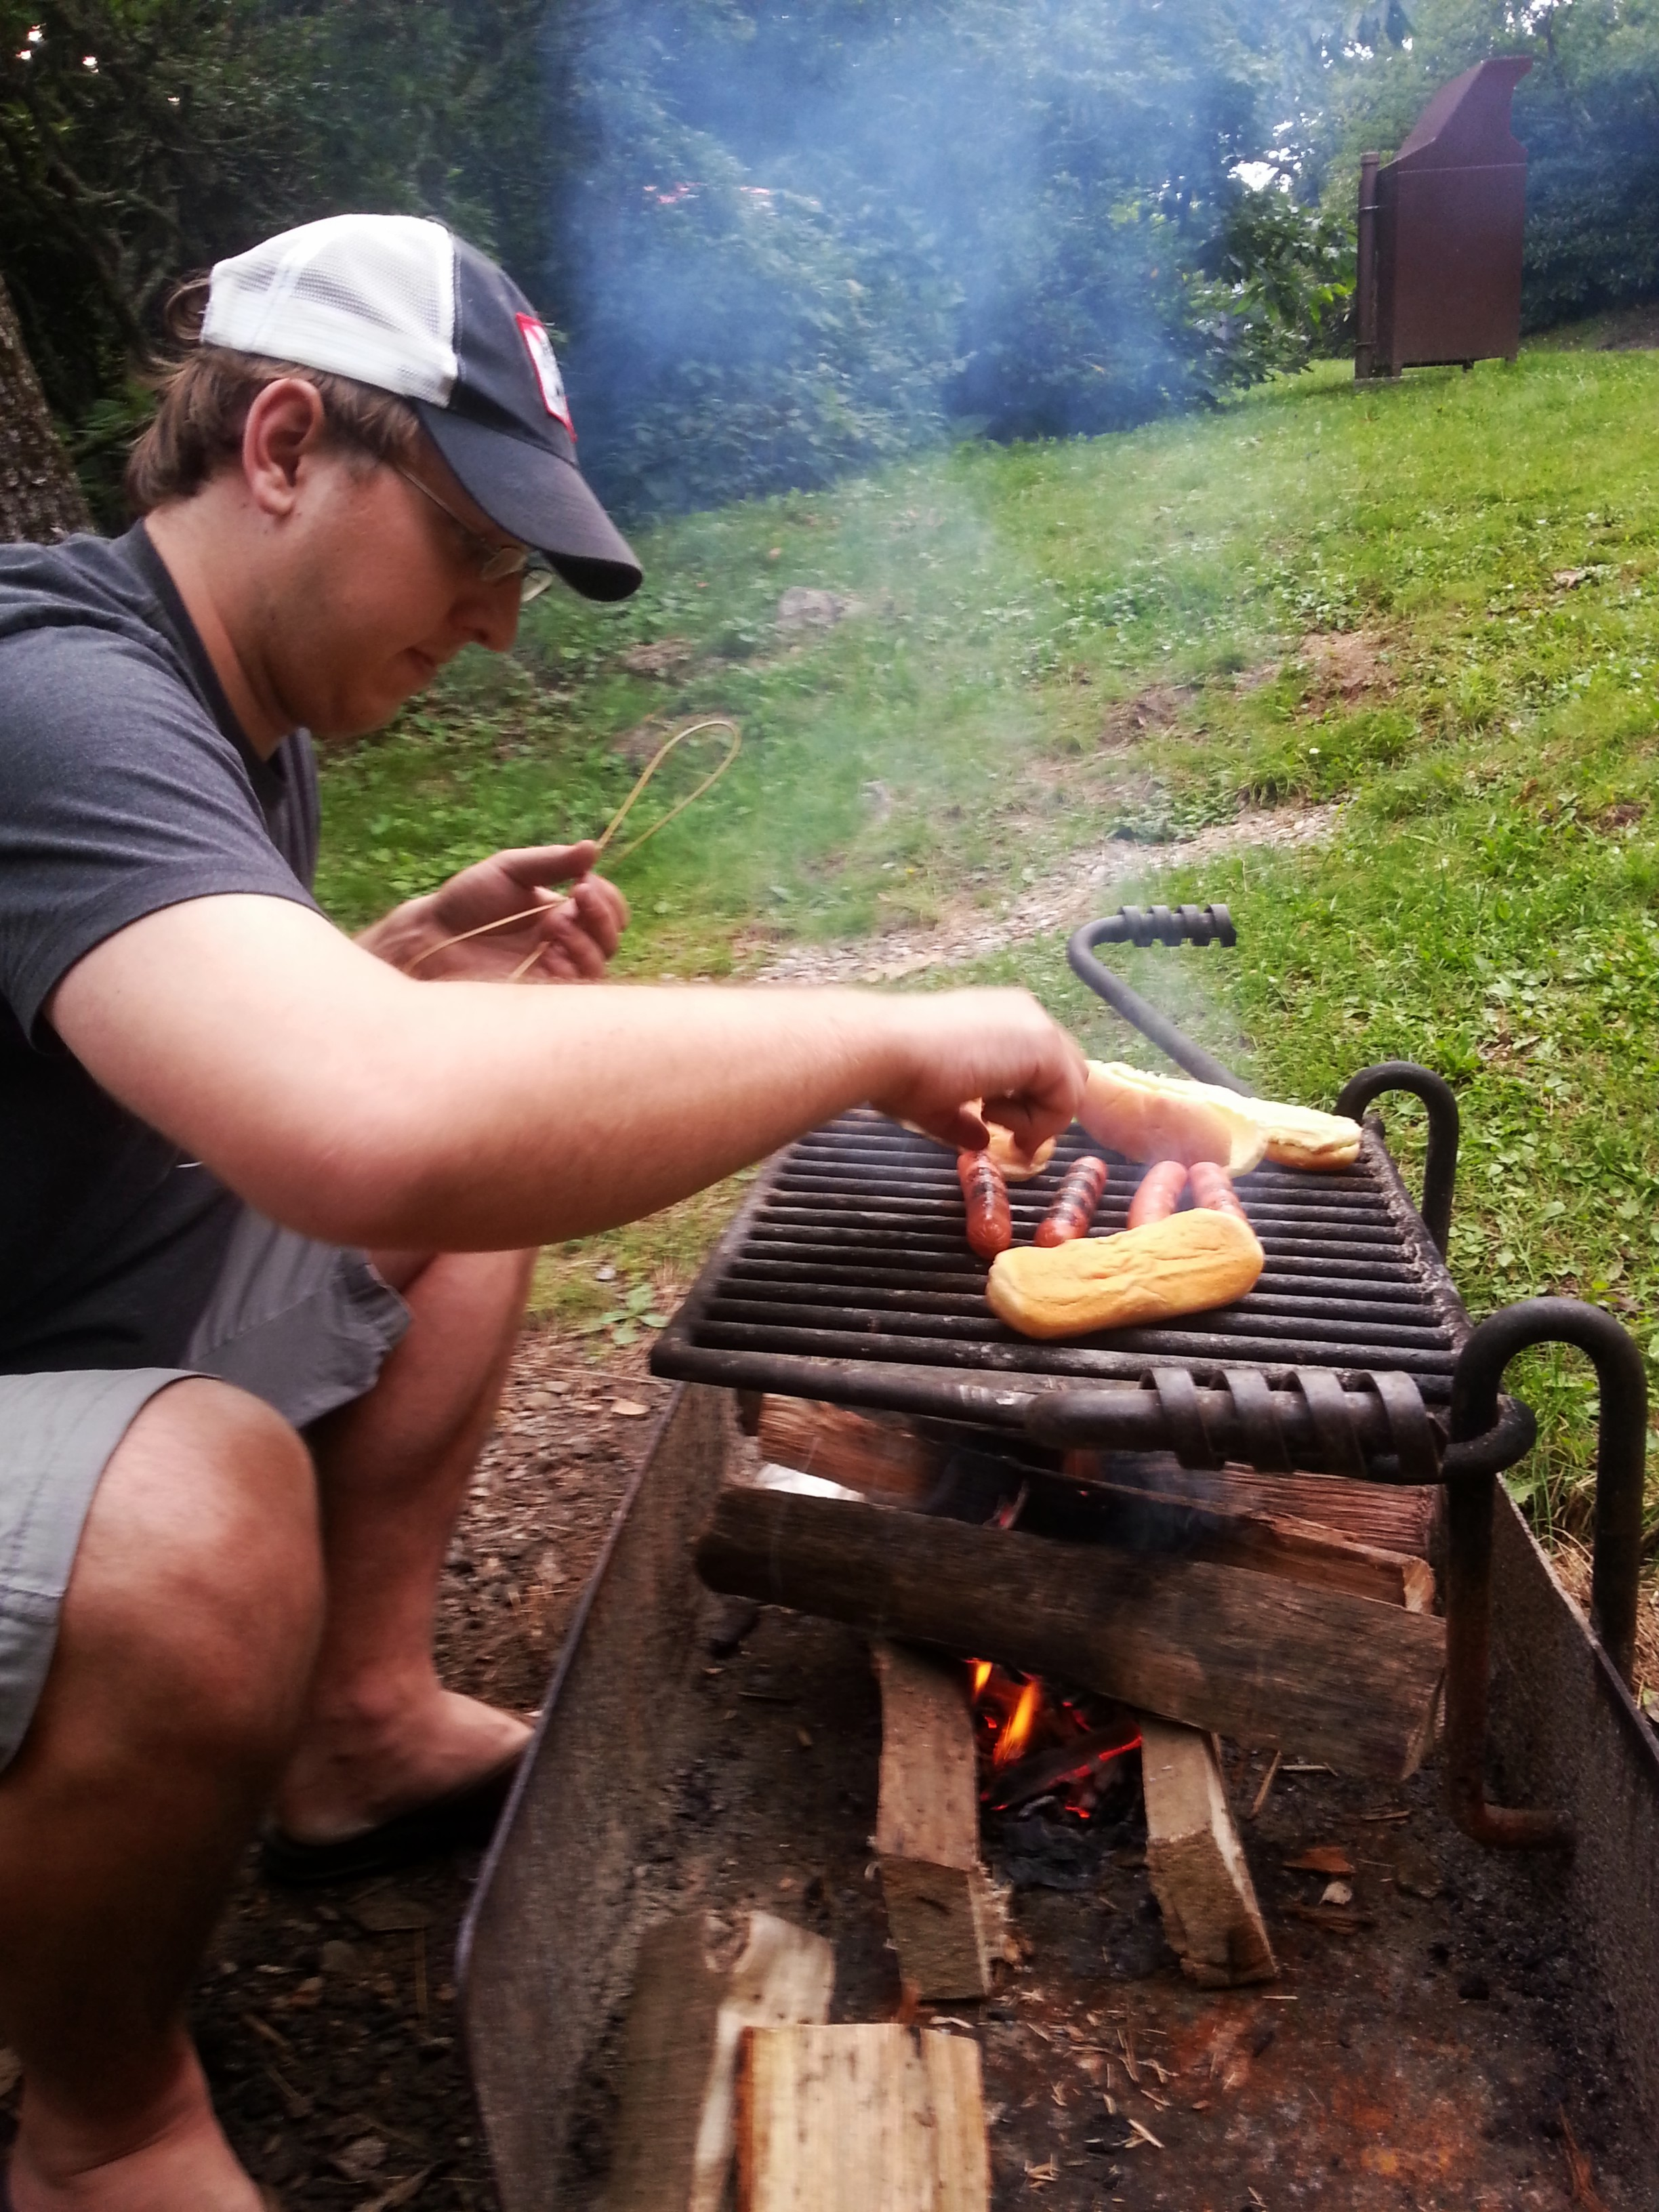 Despite the drizzling rain McCrae got just enough fire going to toast some hotdogs and buns.